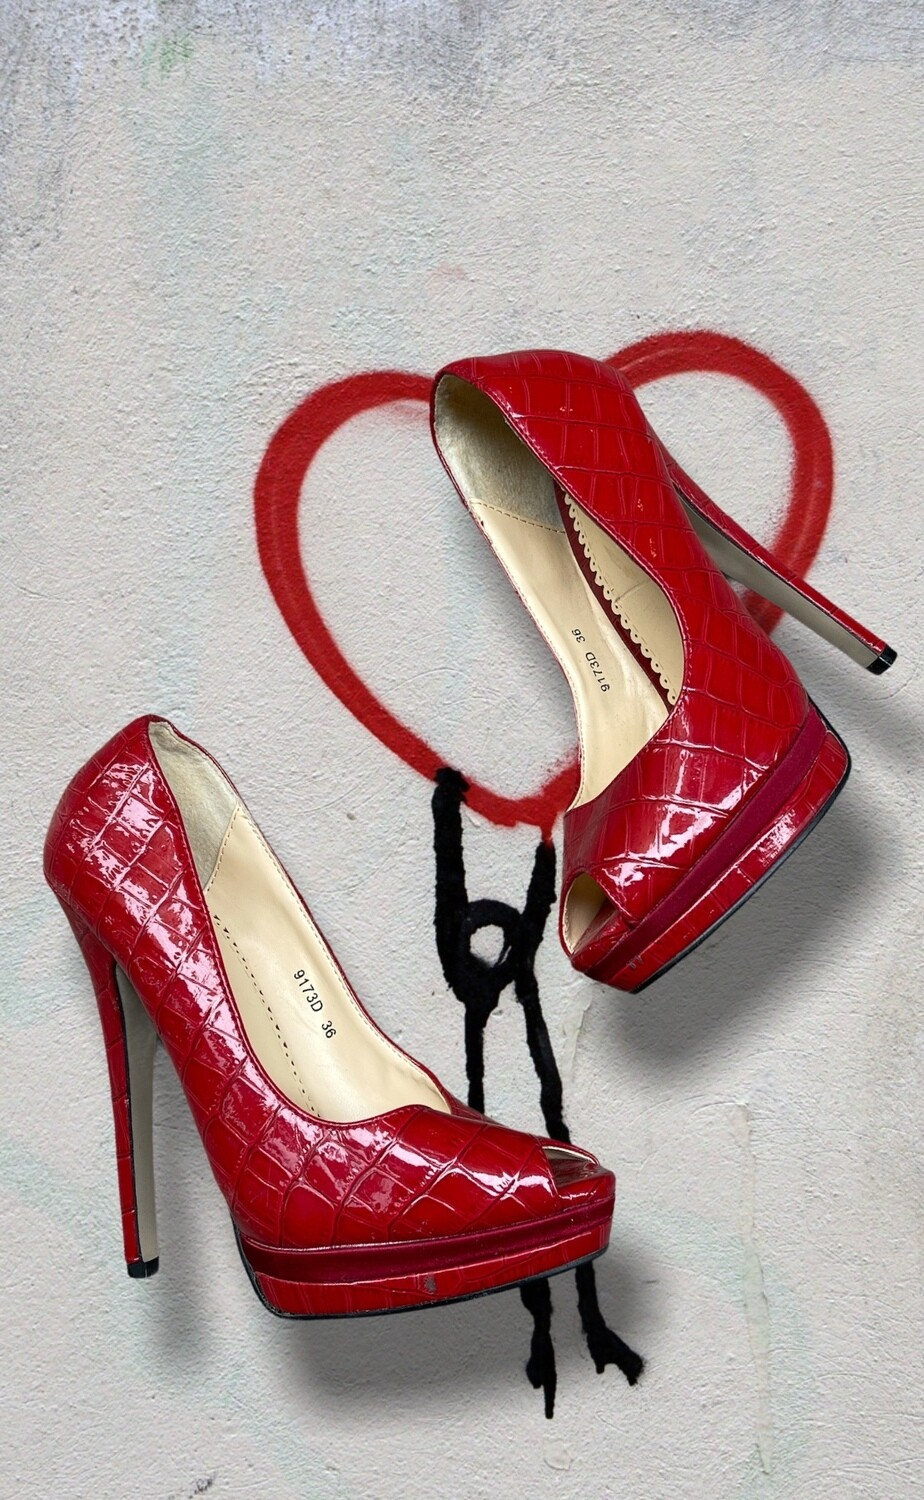 PASSION COLLECTION - Peep toes simil cocodrilo T36